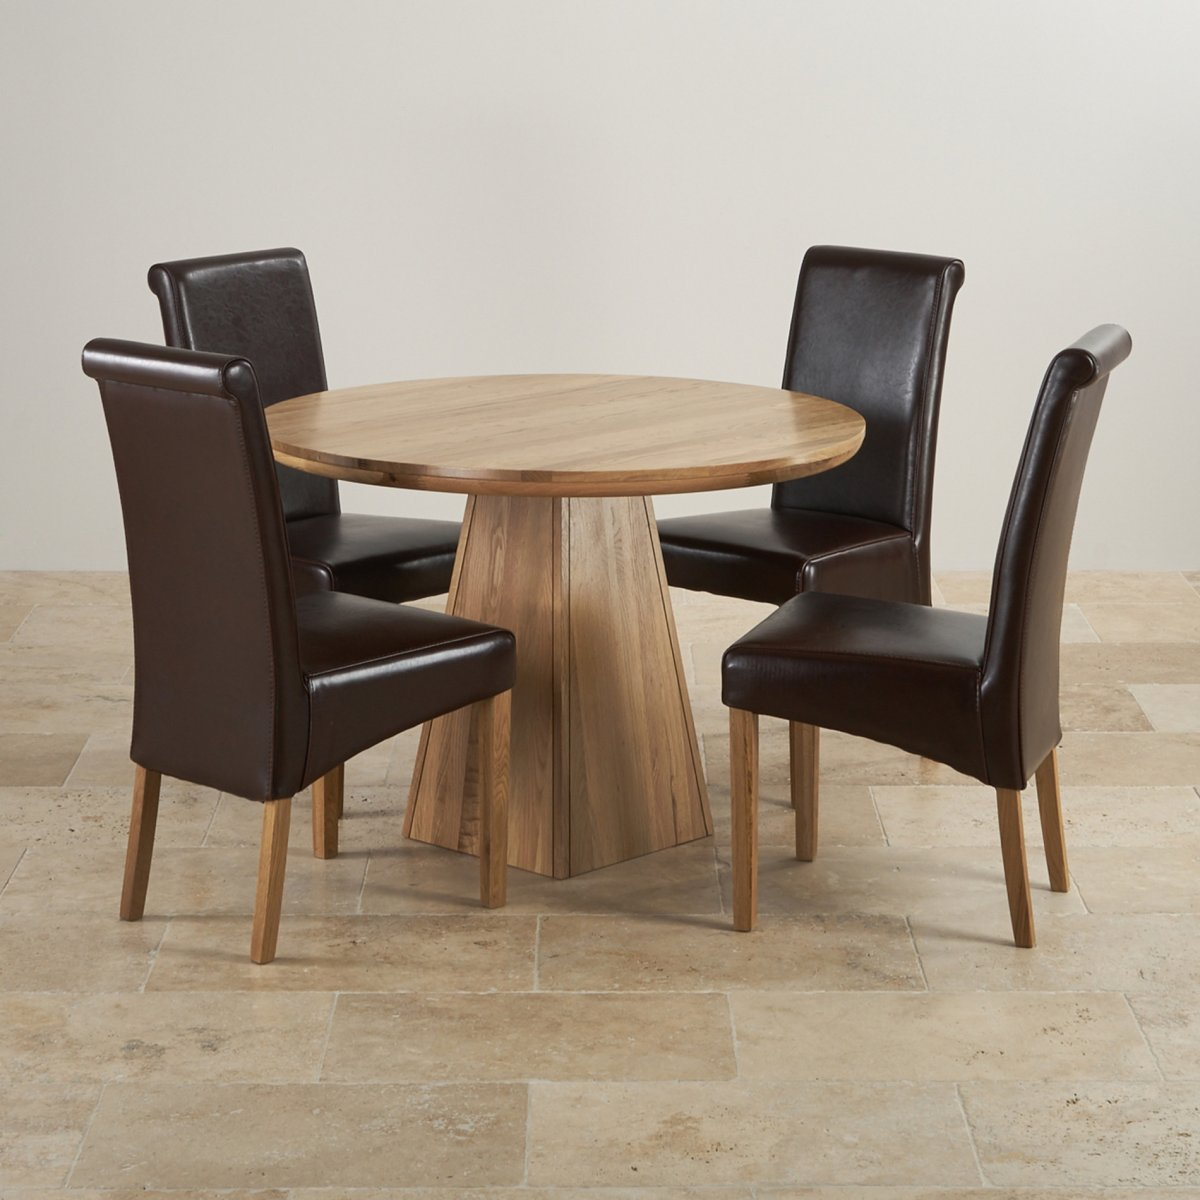 Provence solid oak 3ft 7 dining table with 4 brown chairs for Dinner table set for 4